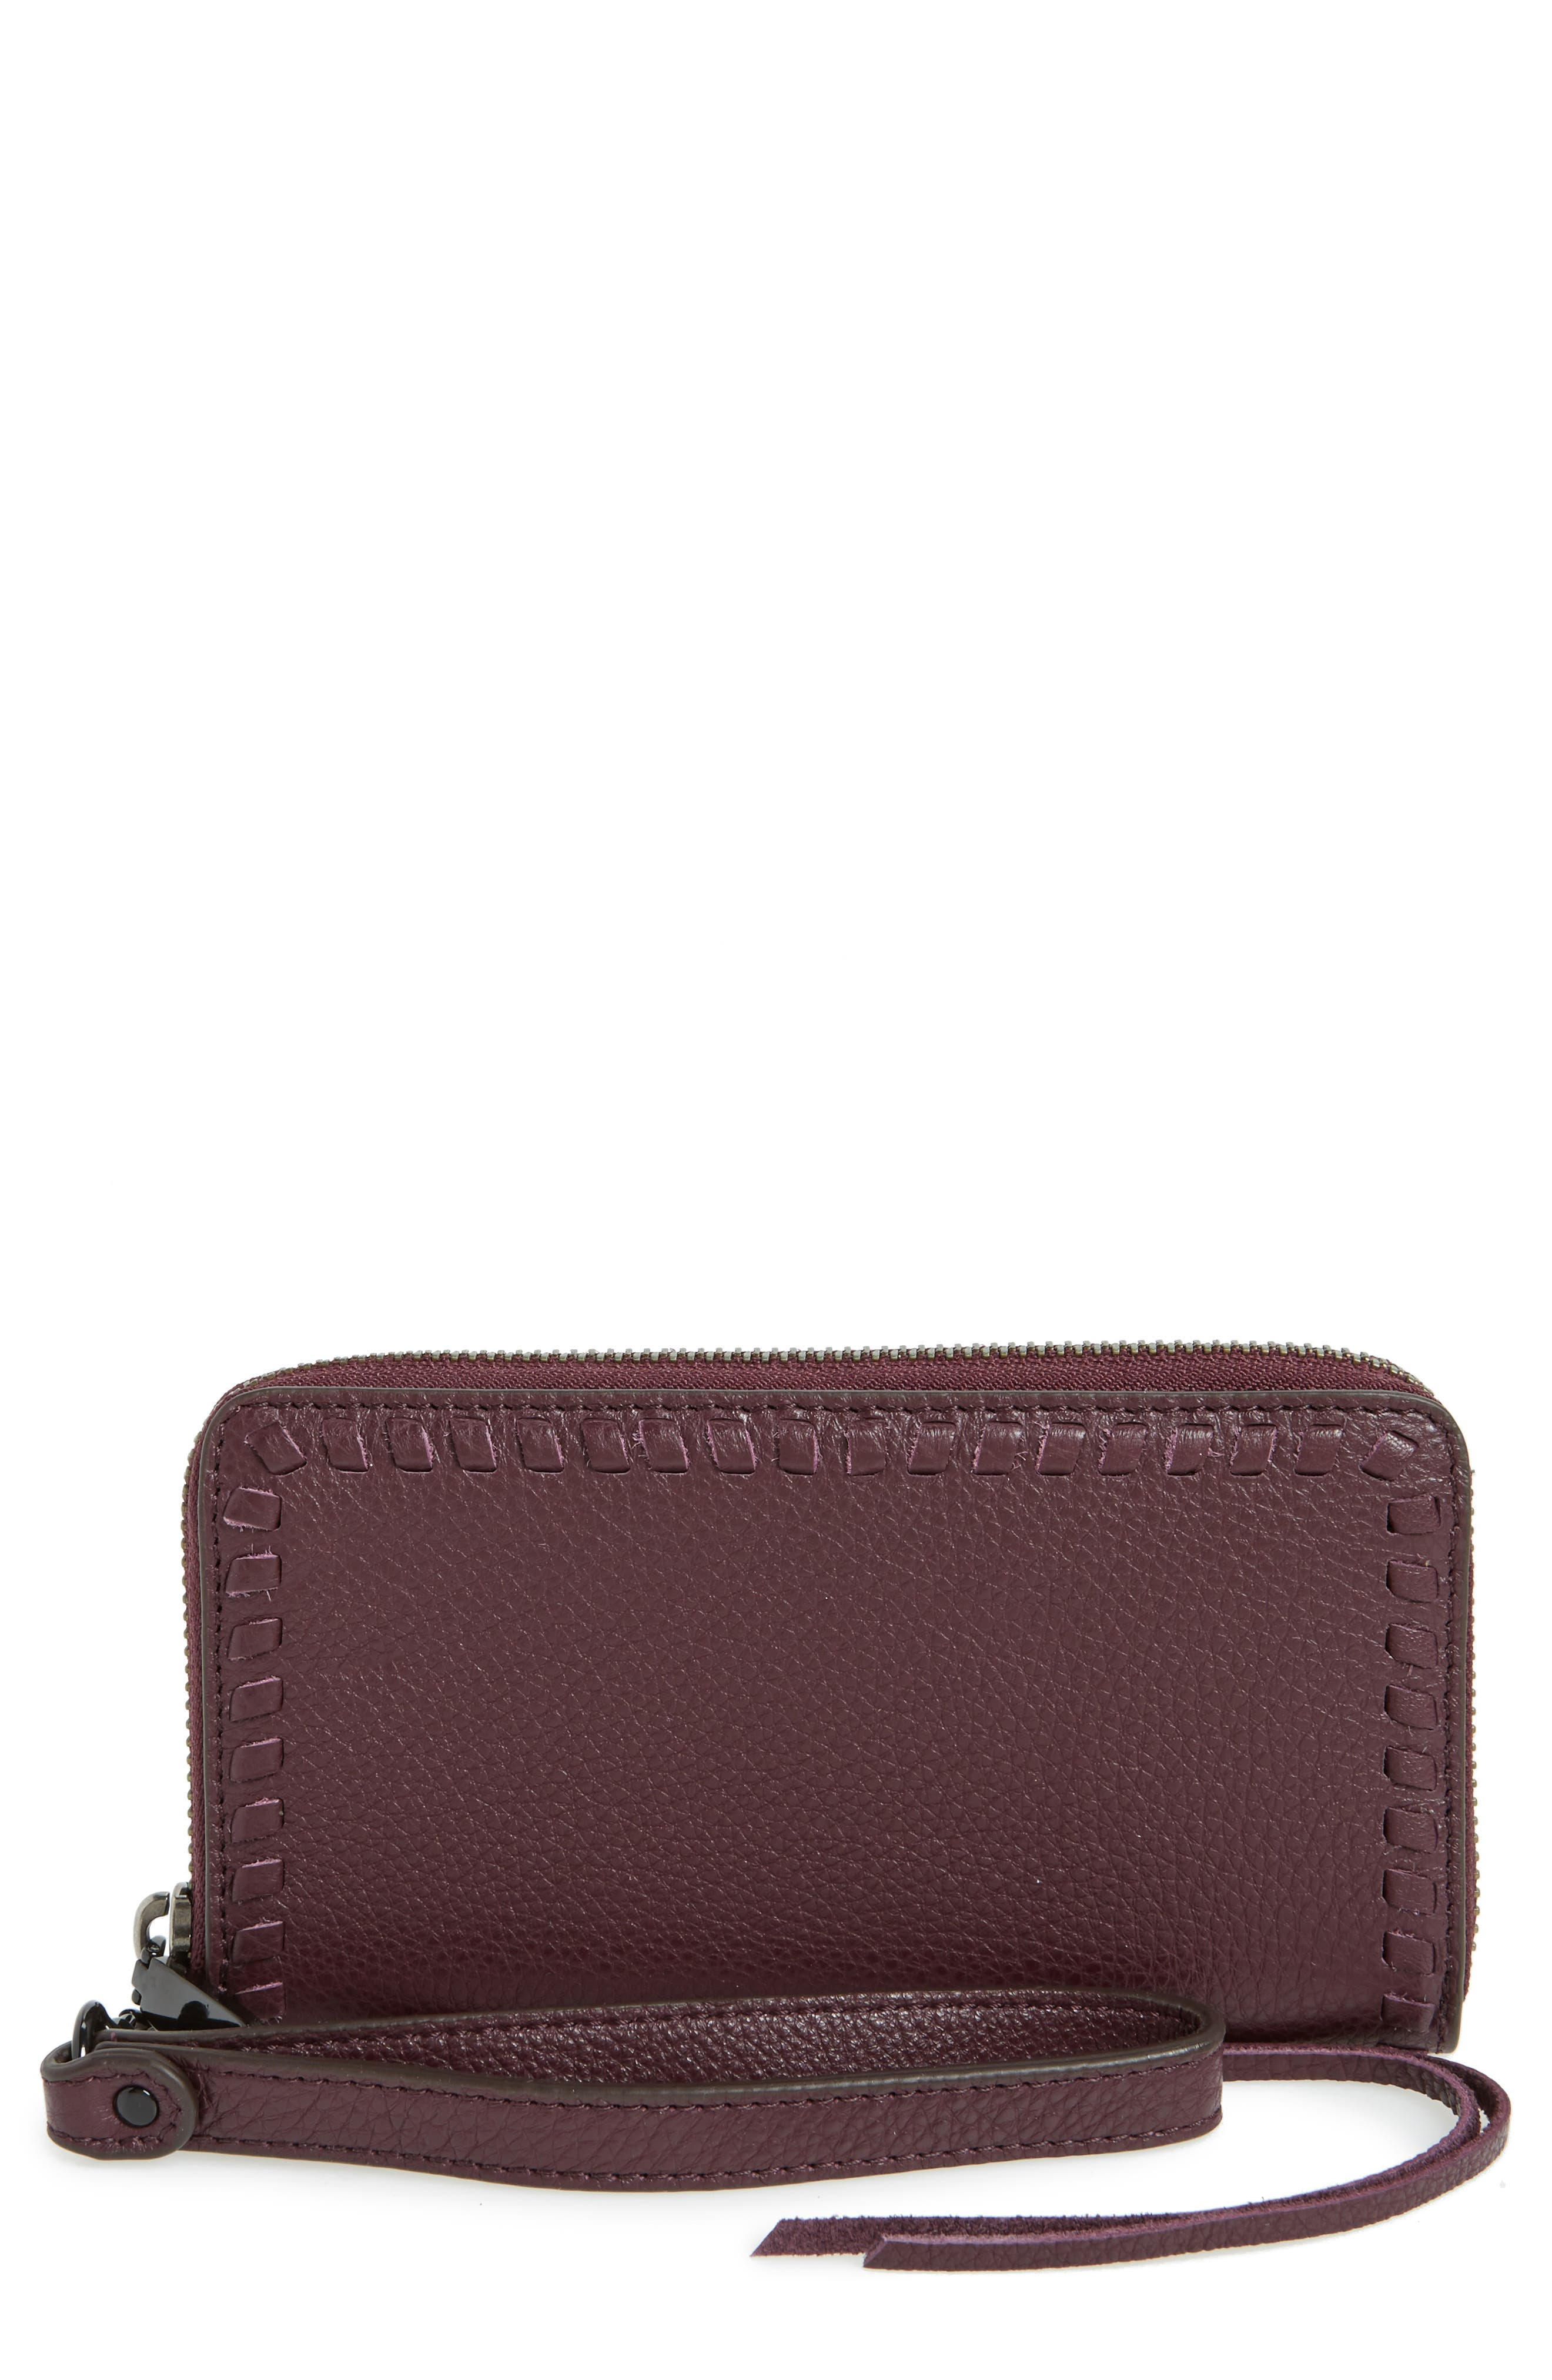 Vanity Leather Smartphone Wristlet,                         Main,                         color, 610